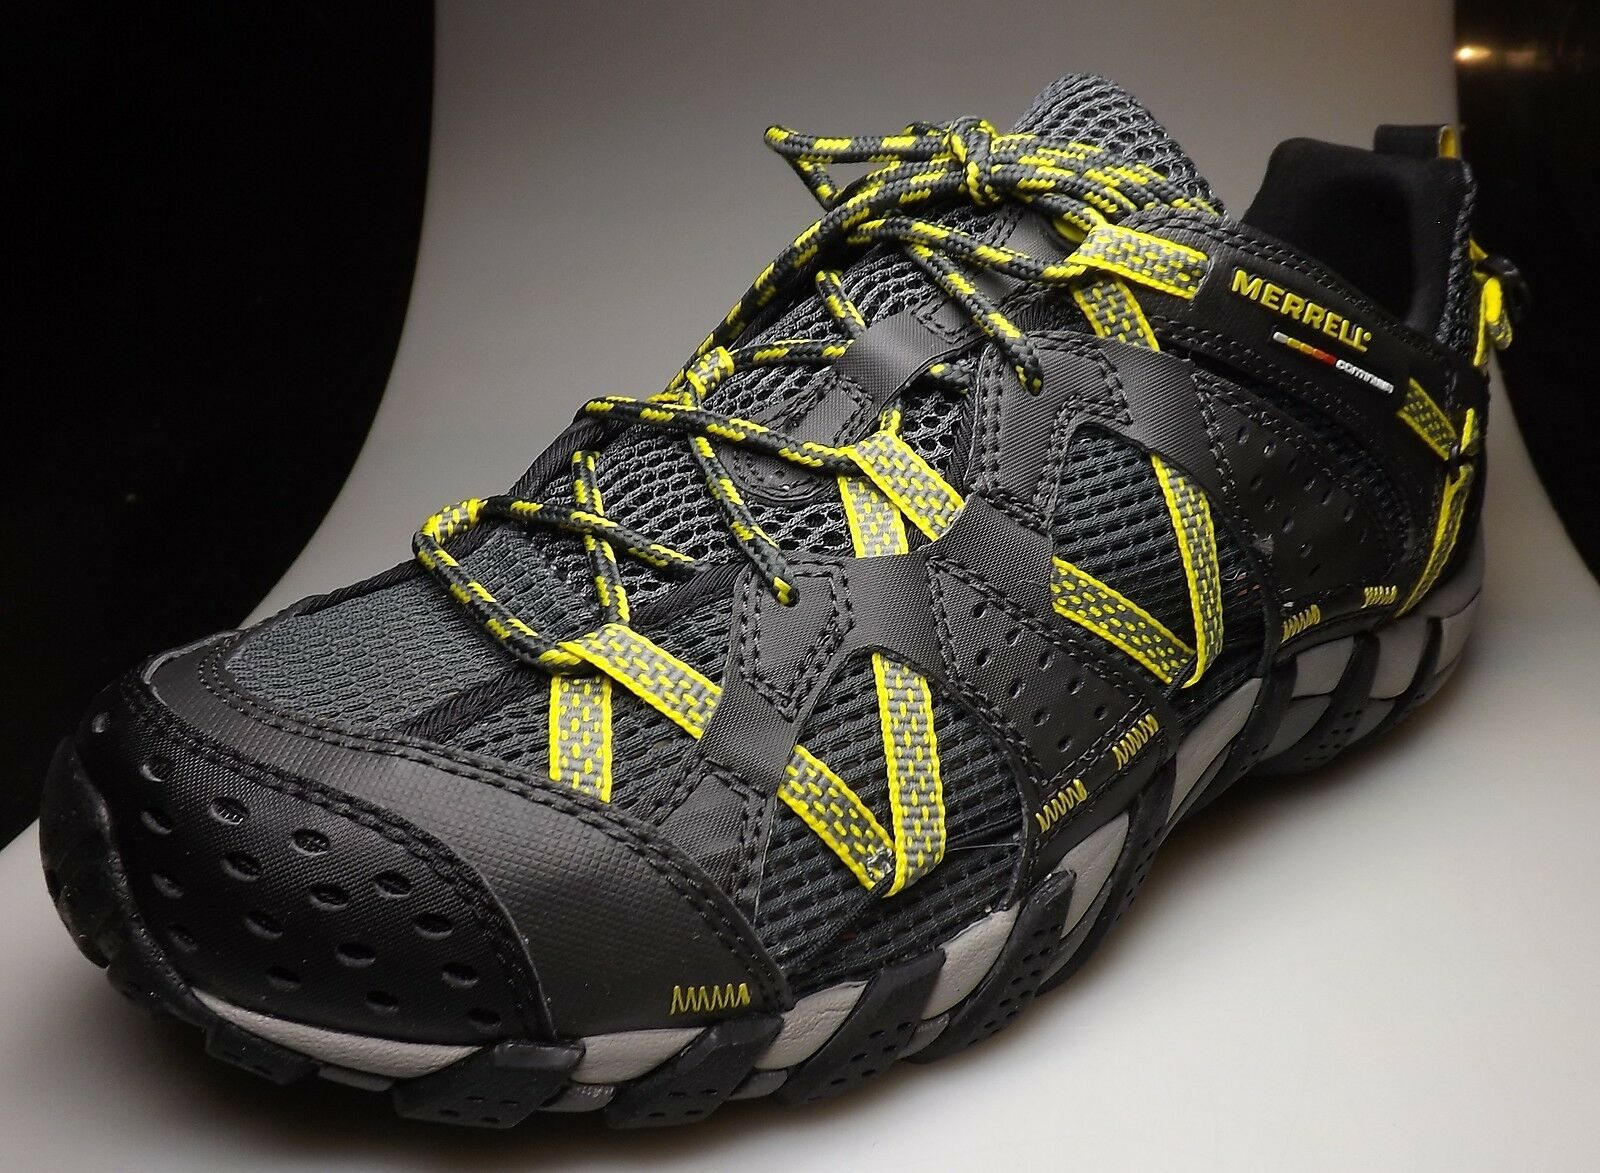 Merrell waterpro maipo mens multisport - footwear  for water, carbon-yellow  fast delivery